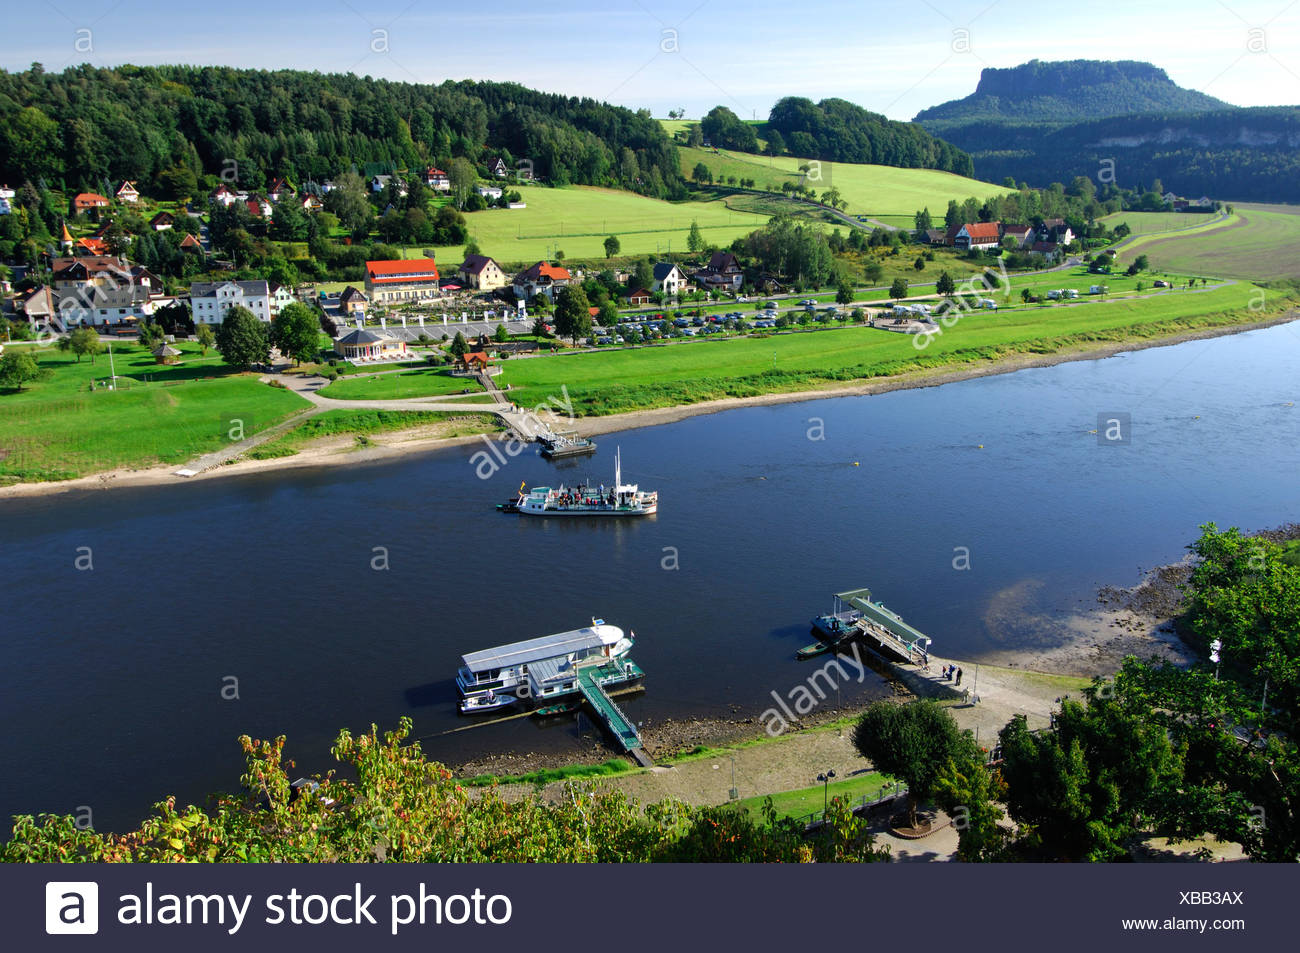 Ferry link between districts Niederrathen and Oberrathen on the Elbe river, Climatic Spa Resort Rathen - Stock Image